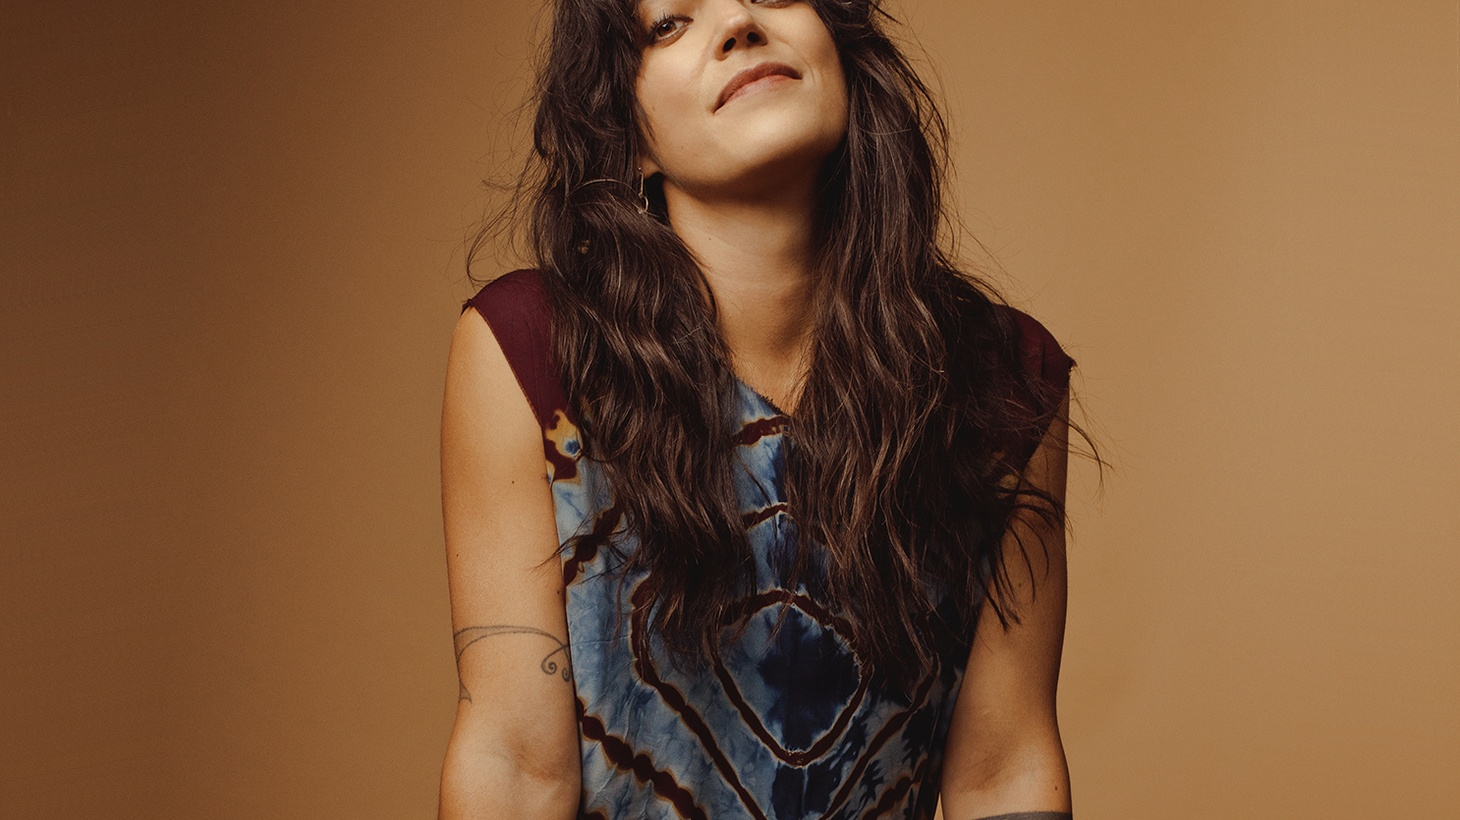 """Sharon Van Etten wants AND does it all. She says: """"I want to be a mom, a singer, an actress, go to school, but yeah, I have a stain on my shirt, oatmeal in my hair and I feel like a mess, but I'm here. Doing it."""